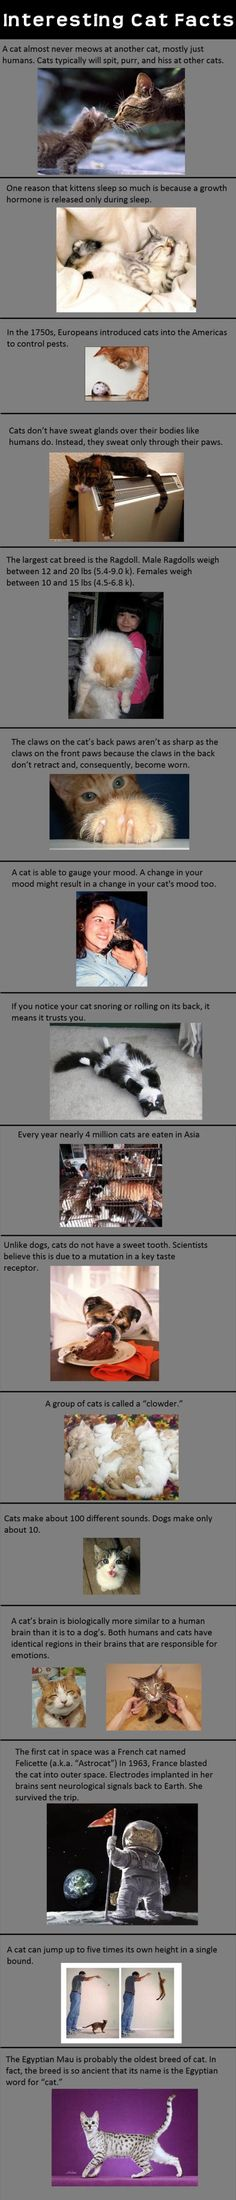 Interesting Cat Facts cute animals cat cats adorable animal kittens kitten facts